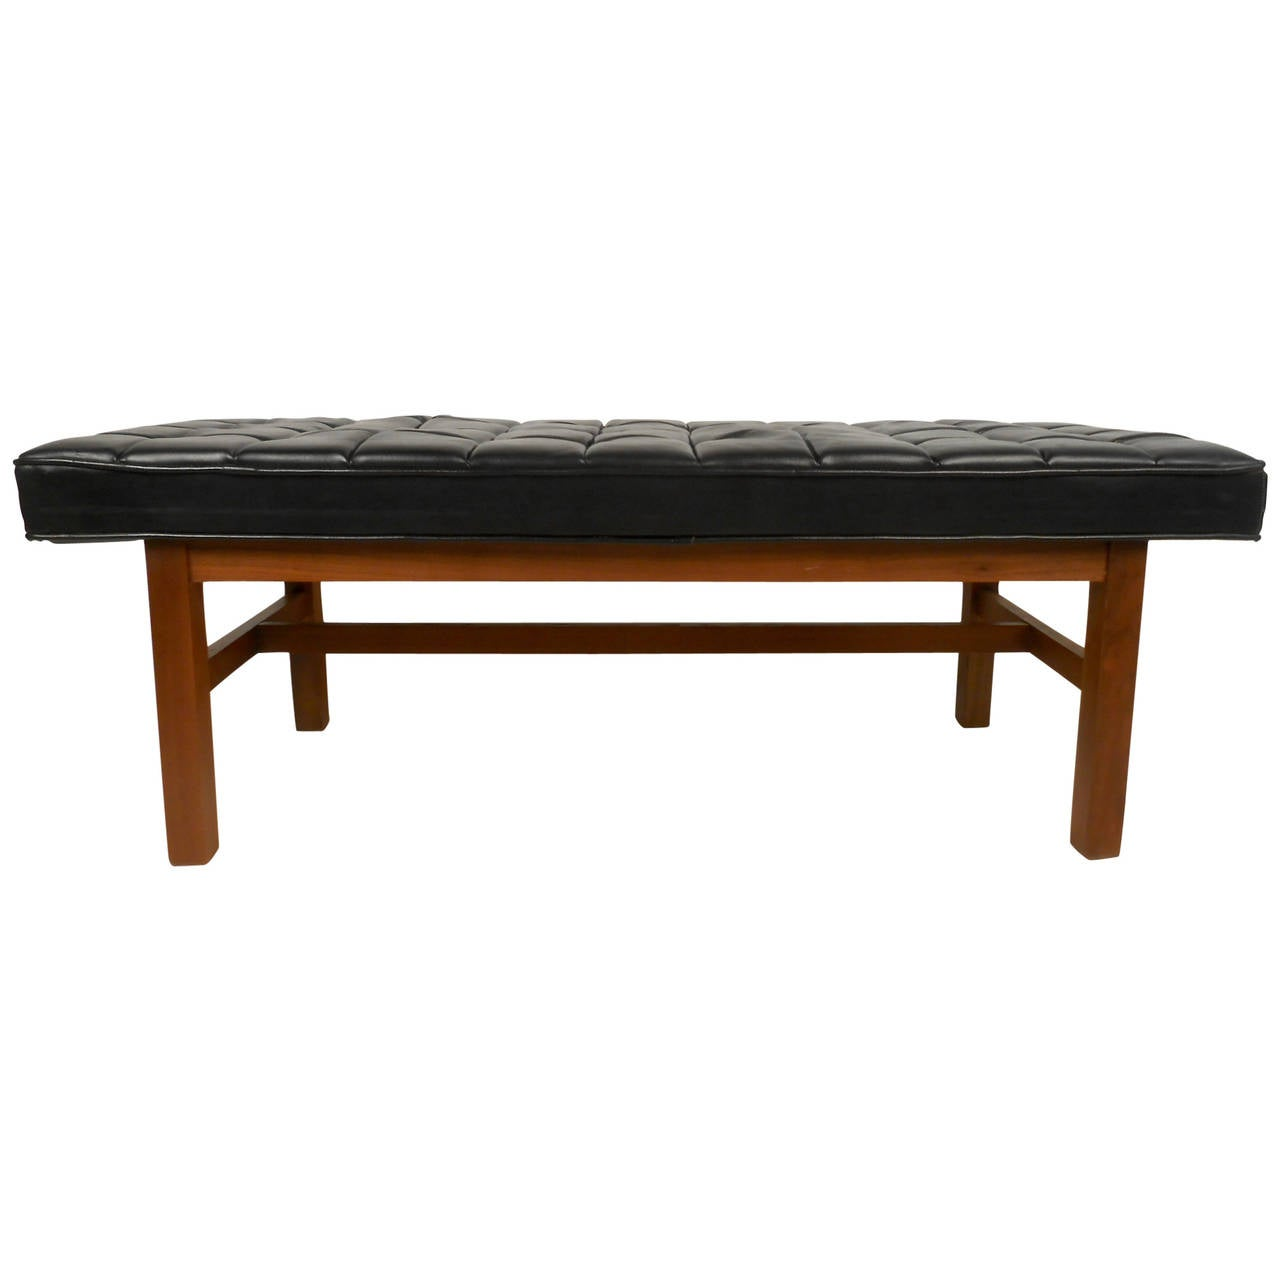 Mid Century Modern Tufted Vinyl Bench For Sale At 1stdibs